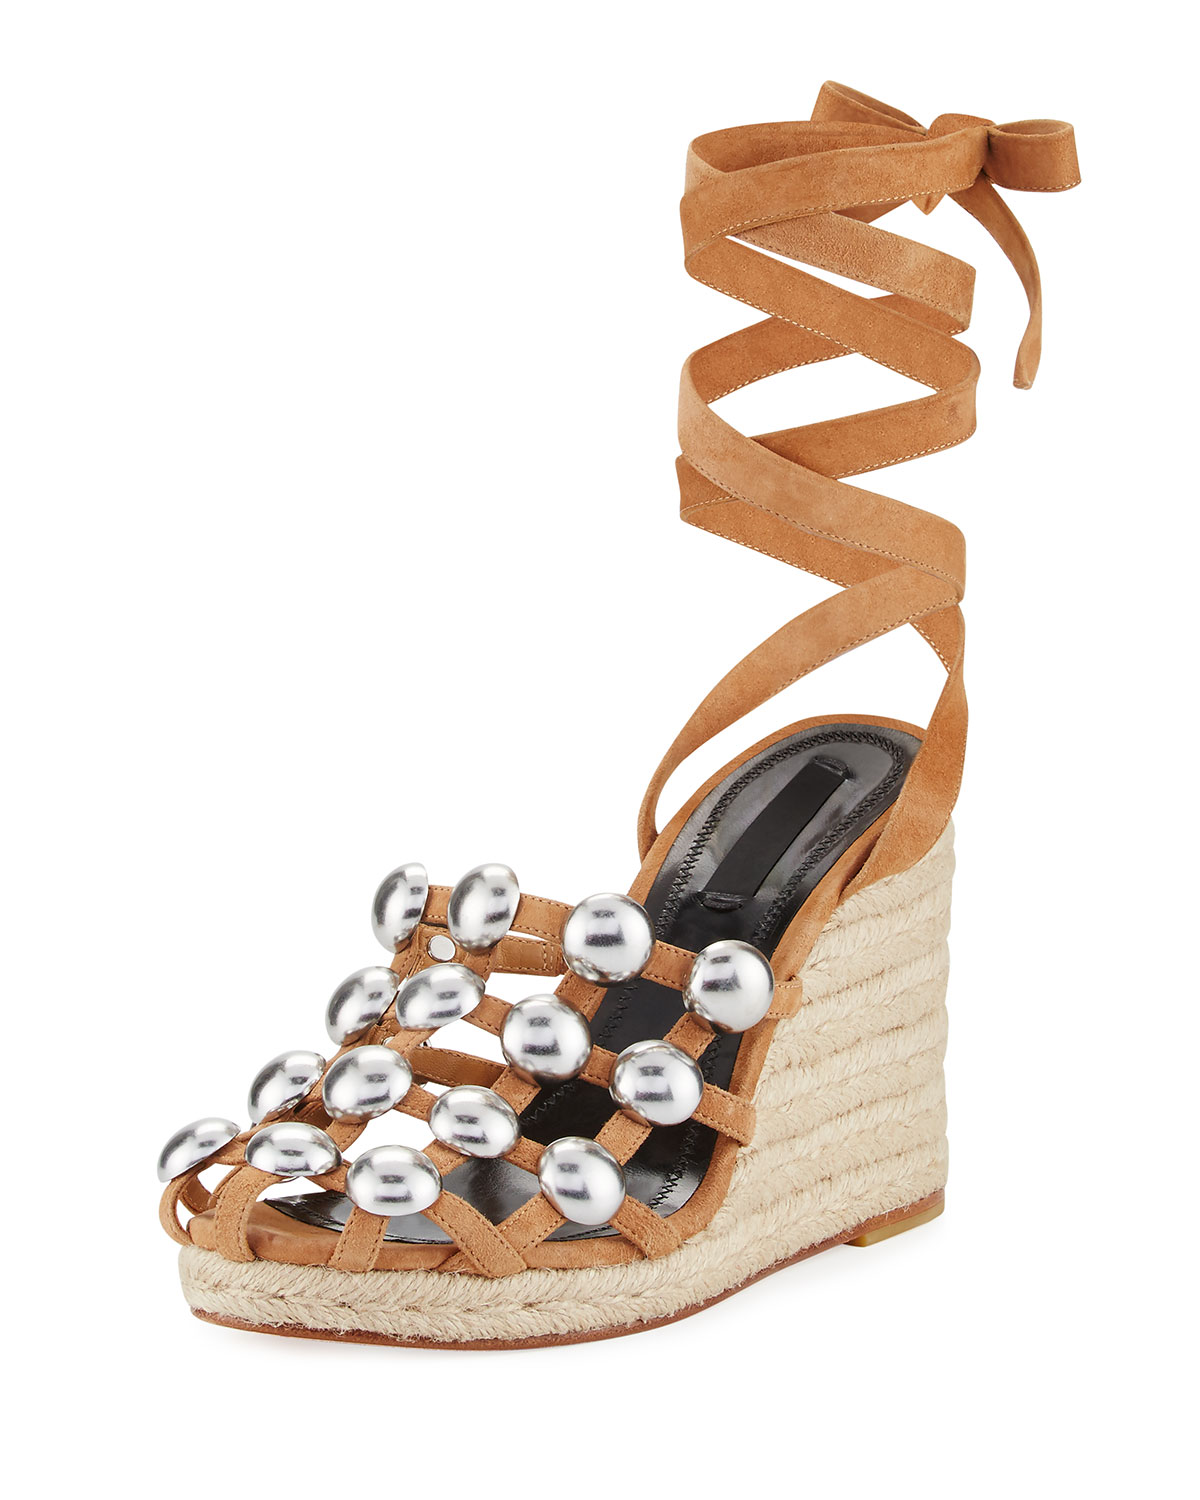 a610f2f07617 Alexander Wang Taylor Clay Suede Wrap Wedge Sandal, Taupe   Neiman ...